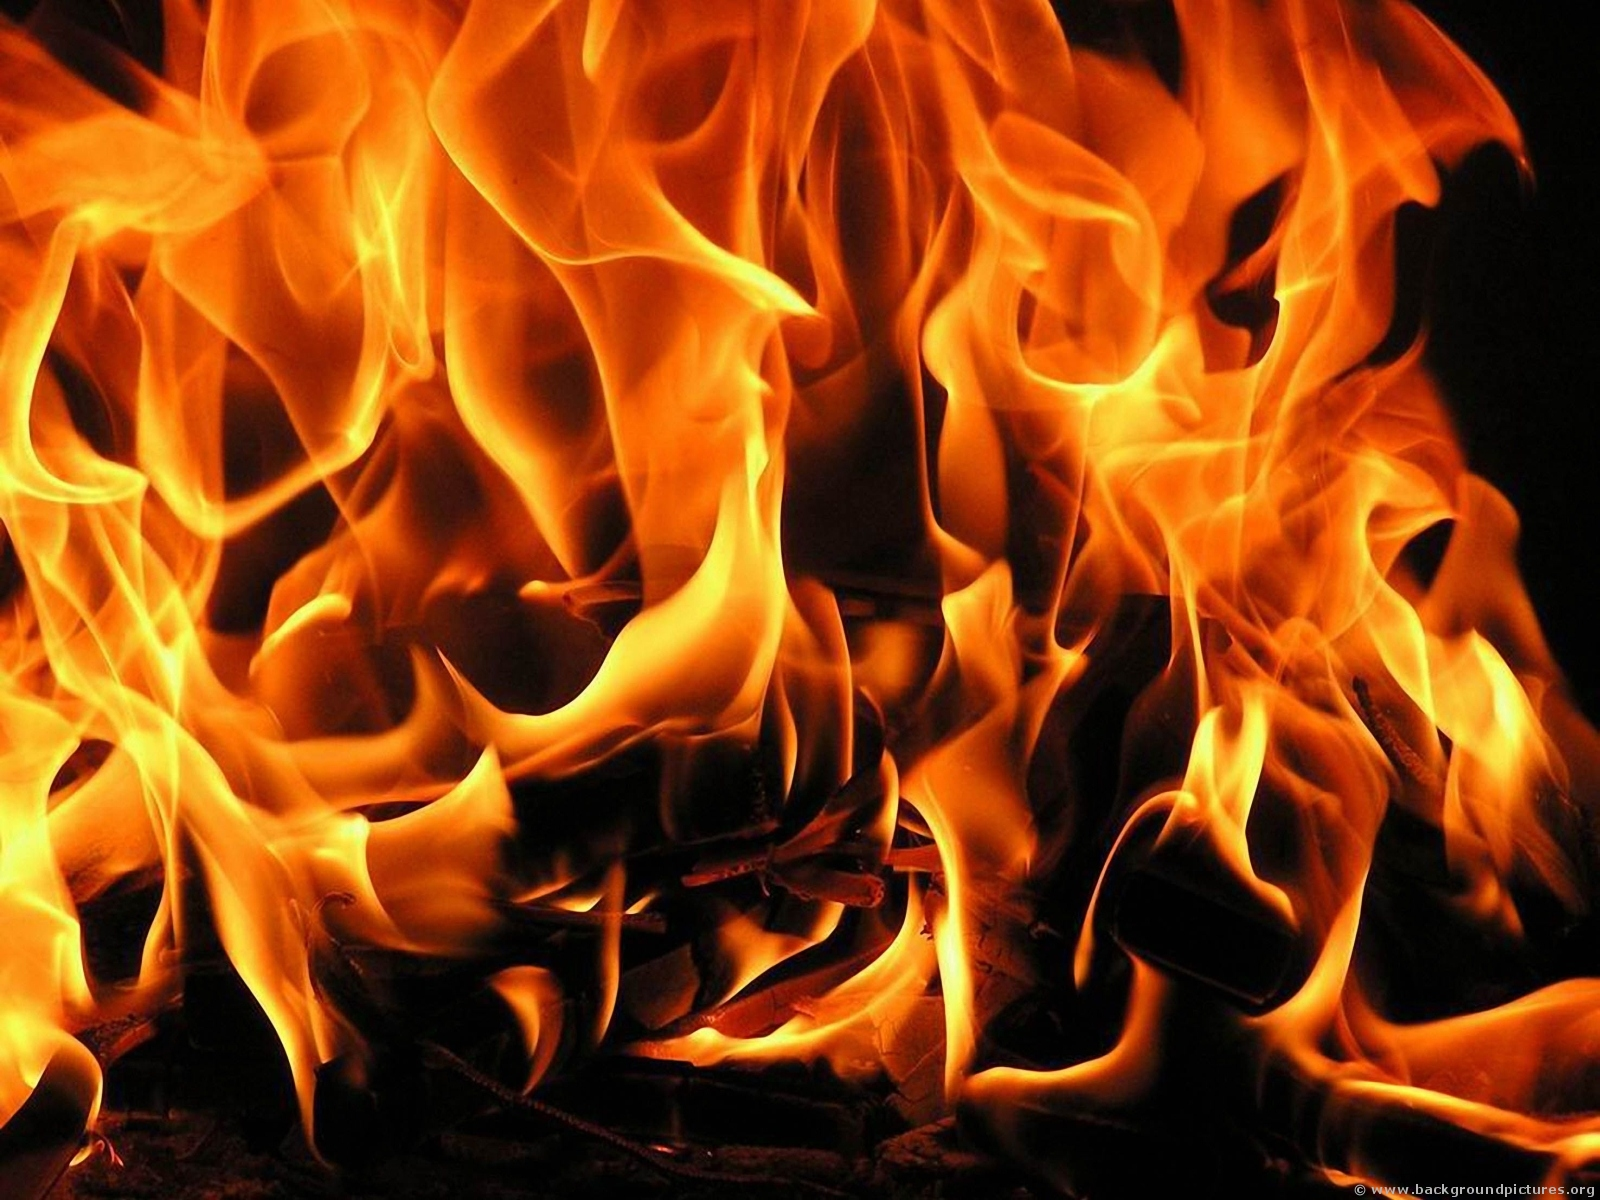 Fire image reference